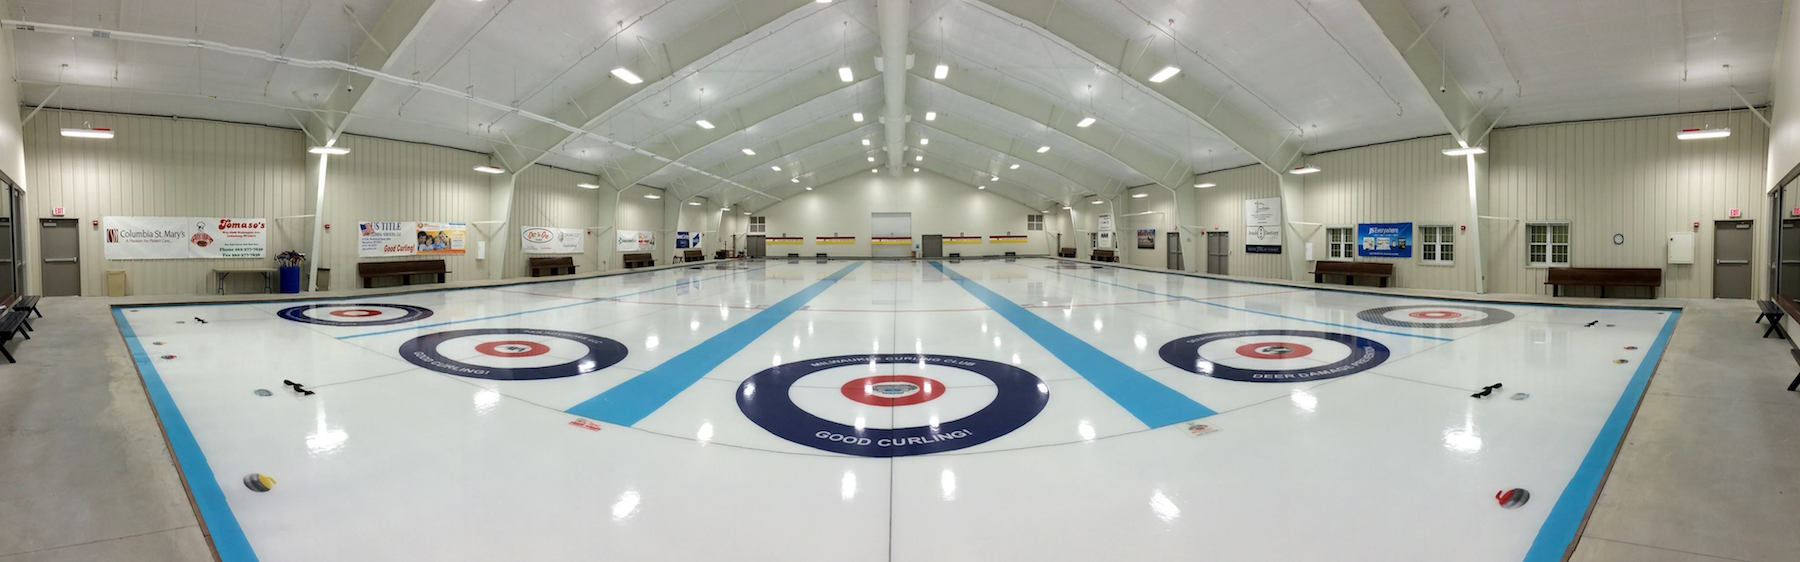 Milwaukee Curling Club